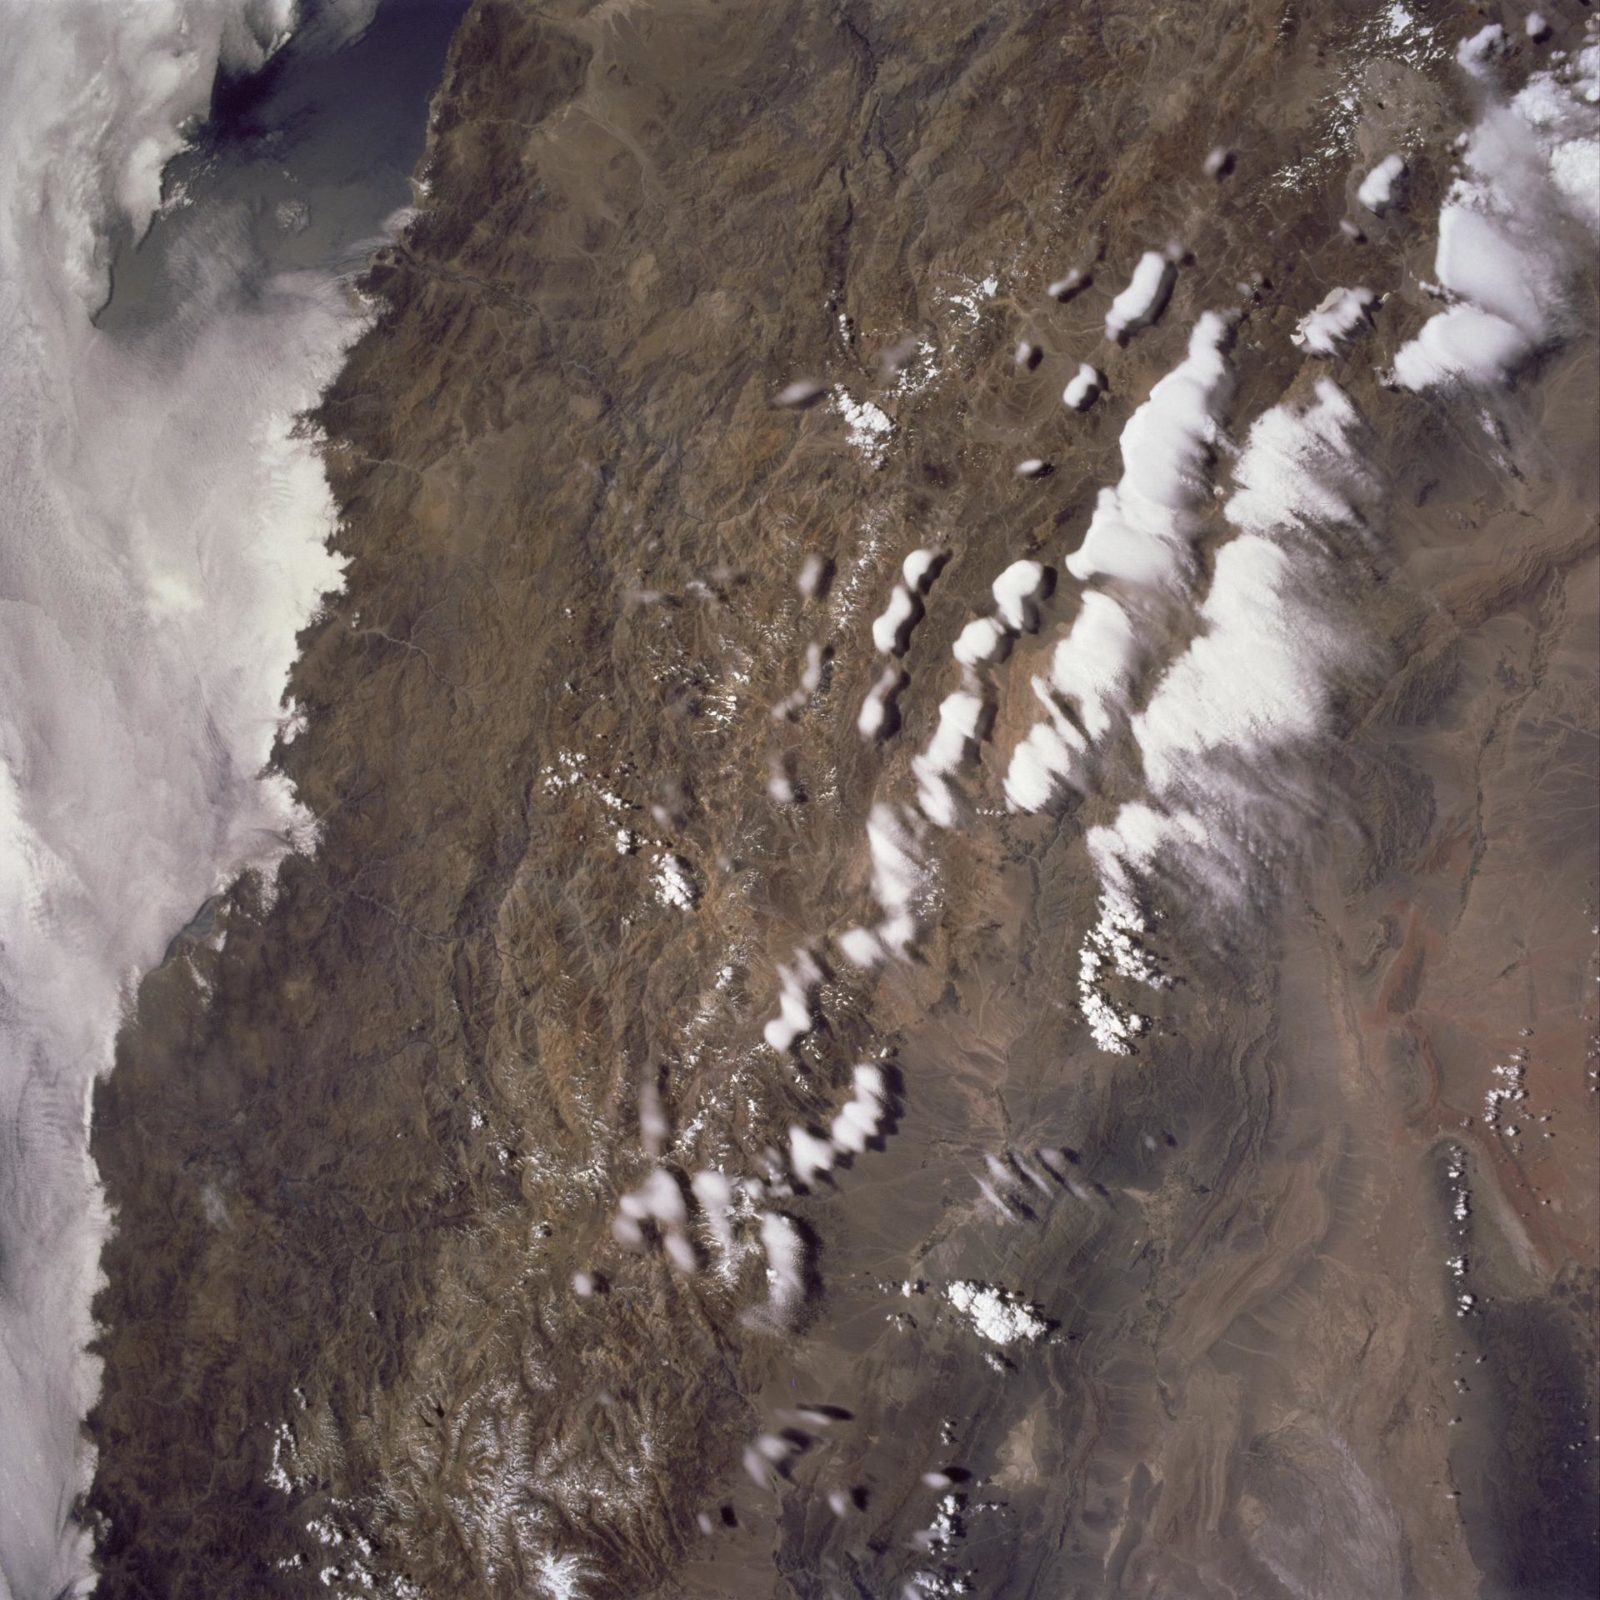 Earth observations of the Andes Mountains taken during the STS-97 mission